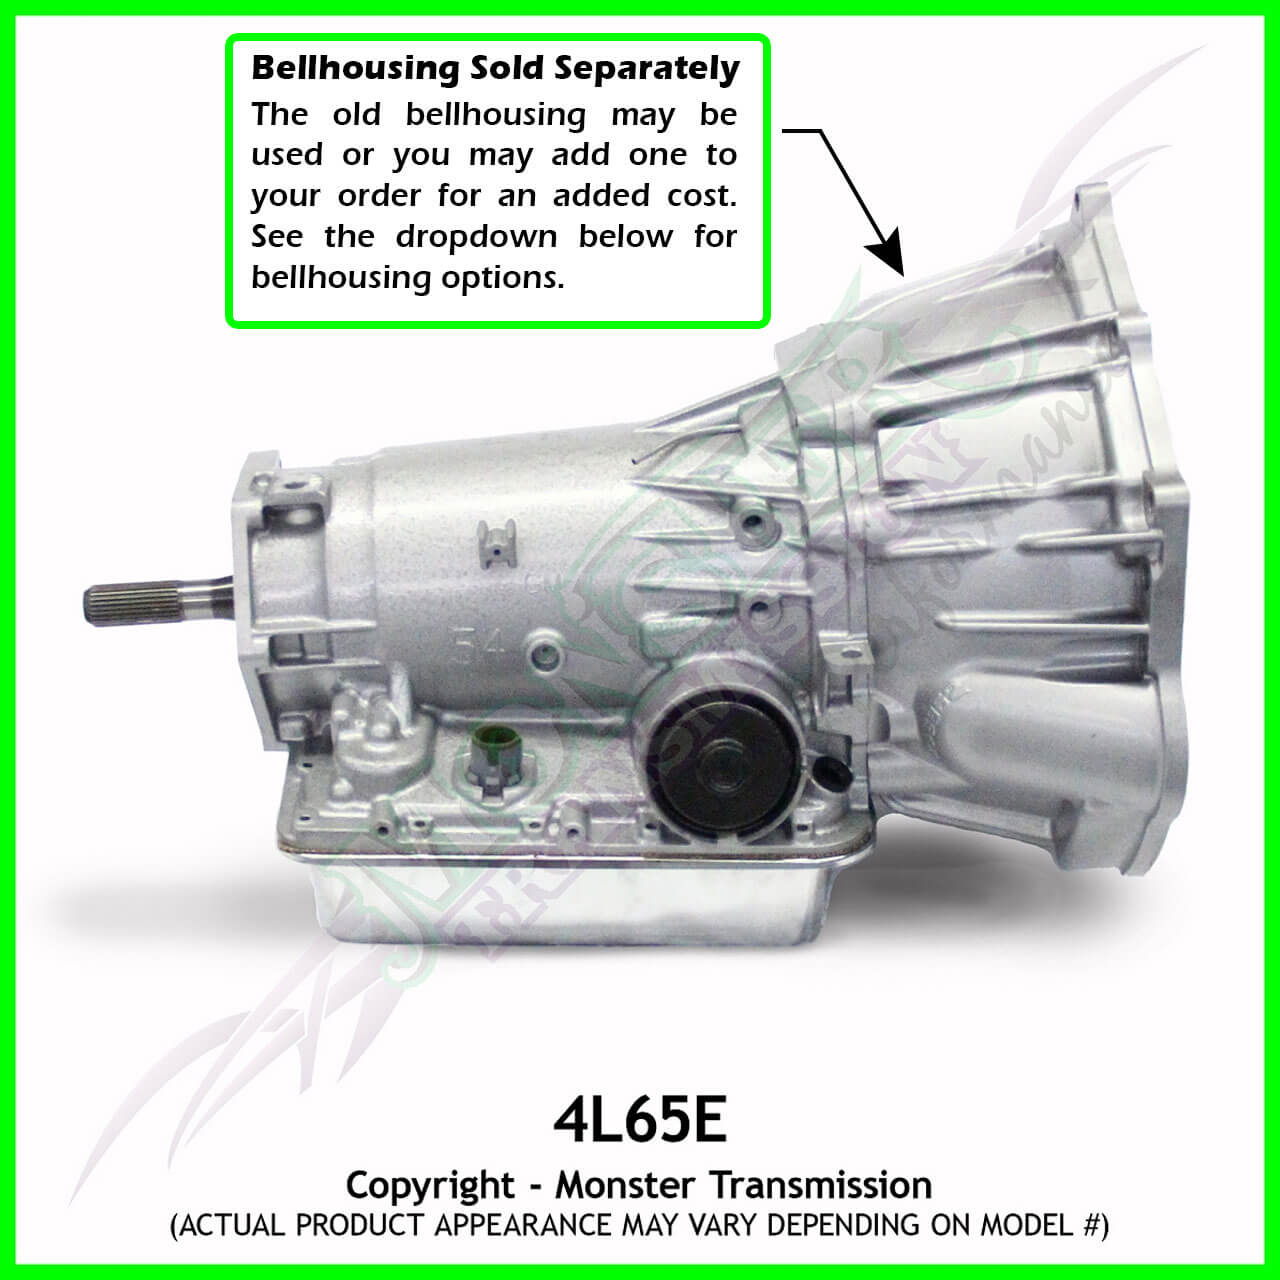 4l60e 4l65e Transmission Remanufactured 4x4 Heavy Duty 48 53 Ls1 2000 Blazer Engine And Wiring Diagram Autos Post Accept Cookies